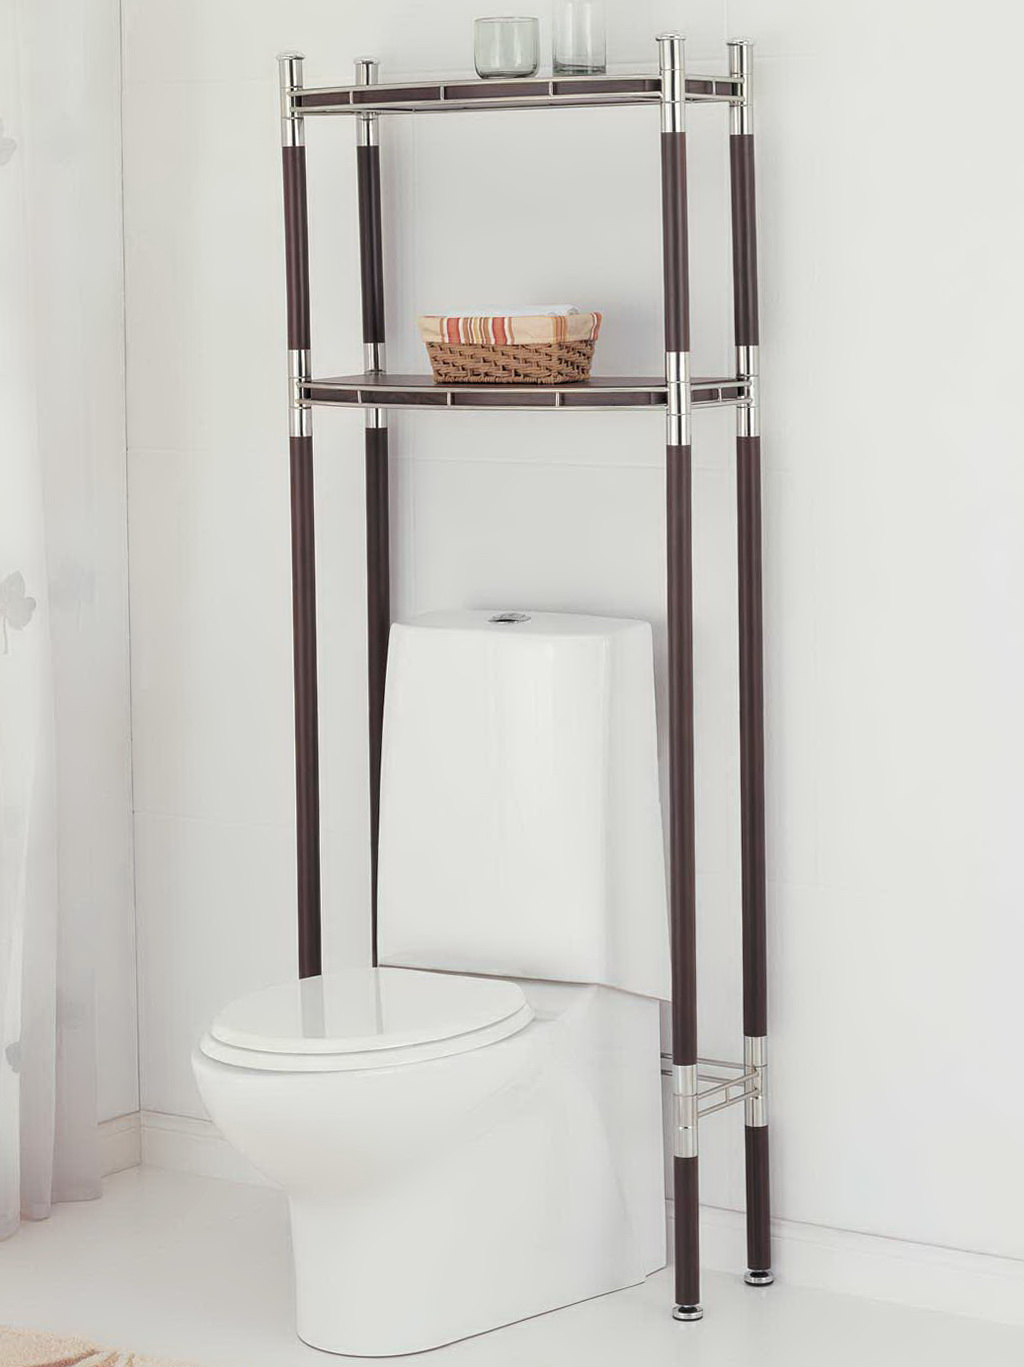 Bathroom Space Saver Over Toilet Ikea